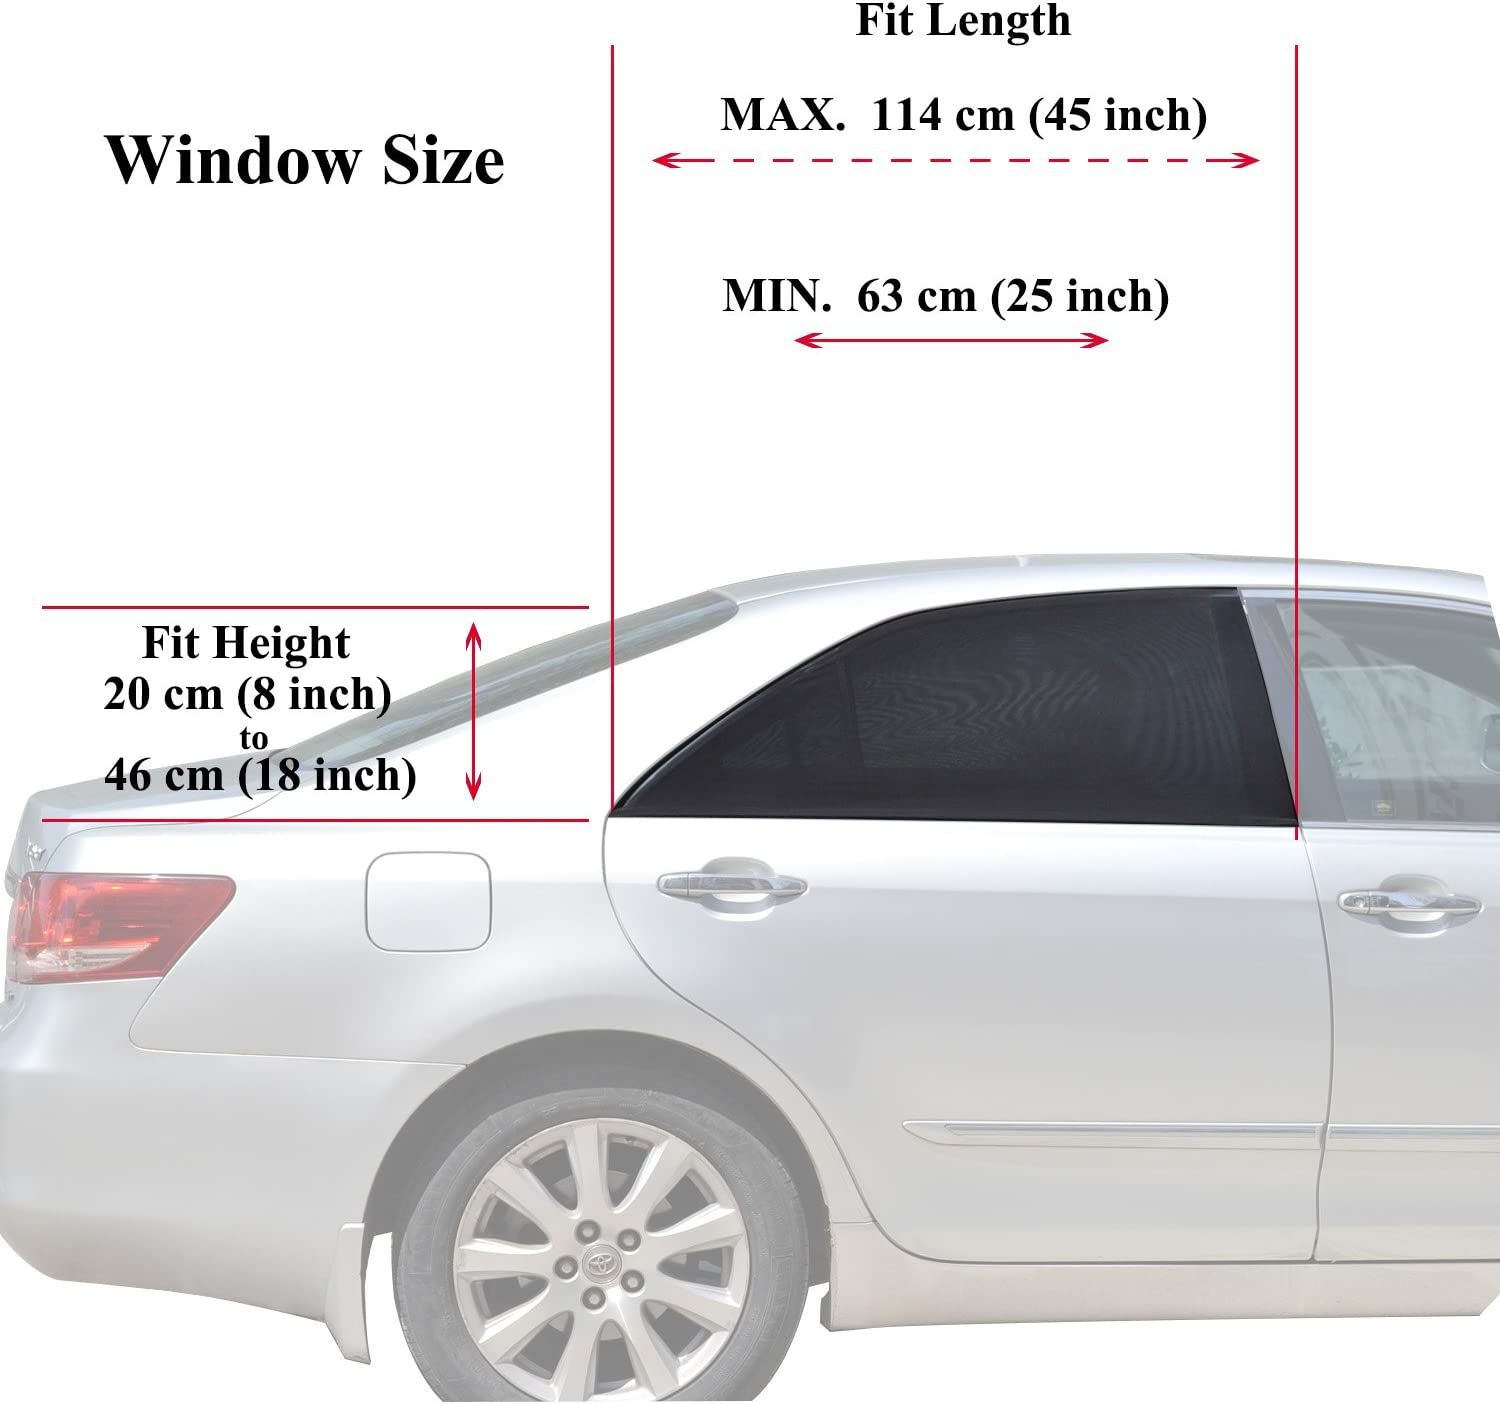 WANPOOL Universal Fit Car Side Window Baby Sun Shade Maximum Protection 2 Pieces Double Layer Design Protects Your Kids from Sun Burn